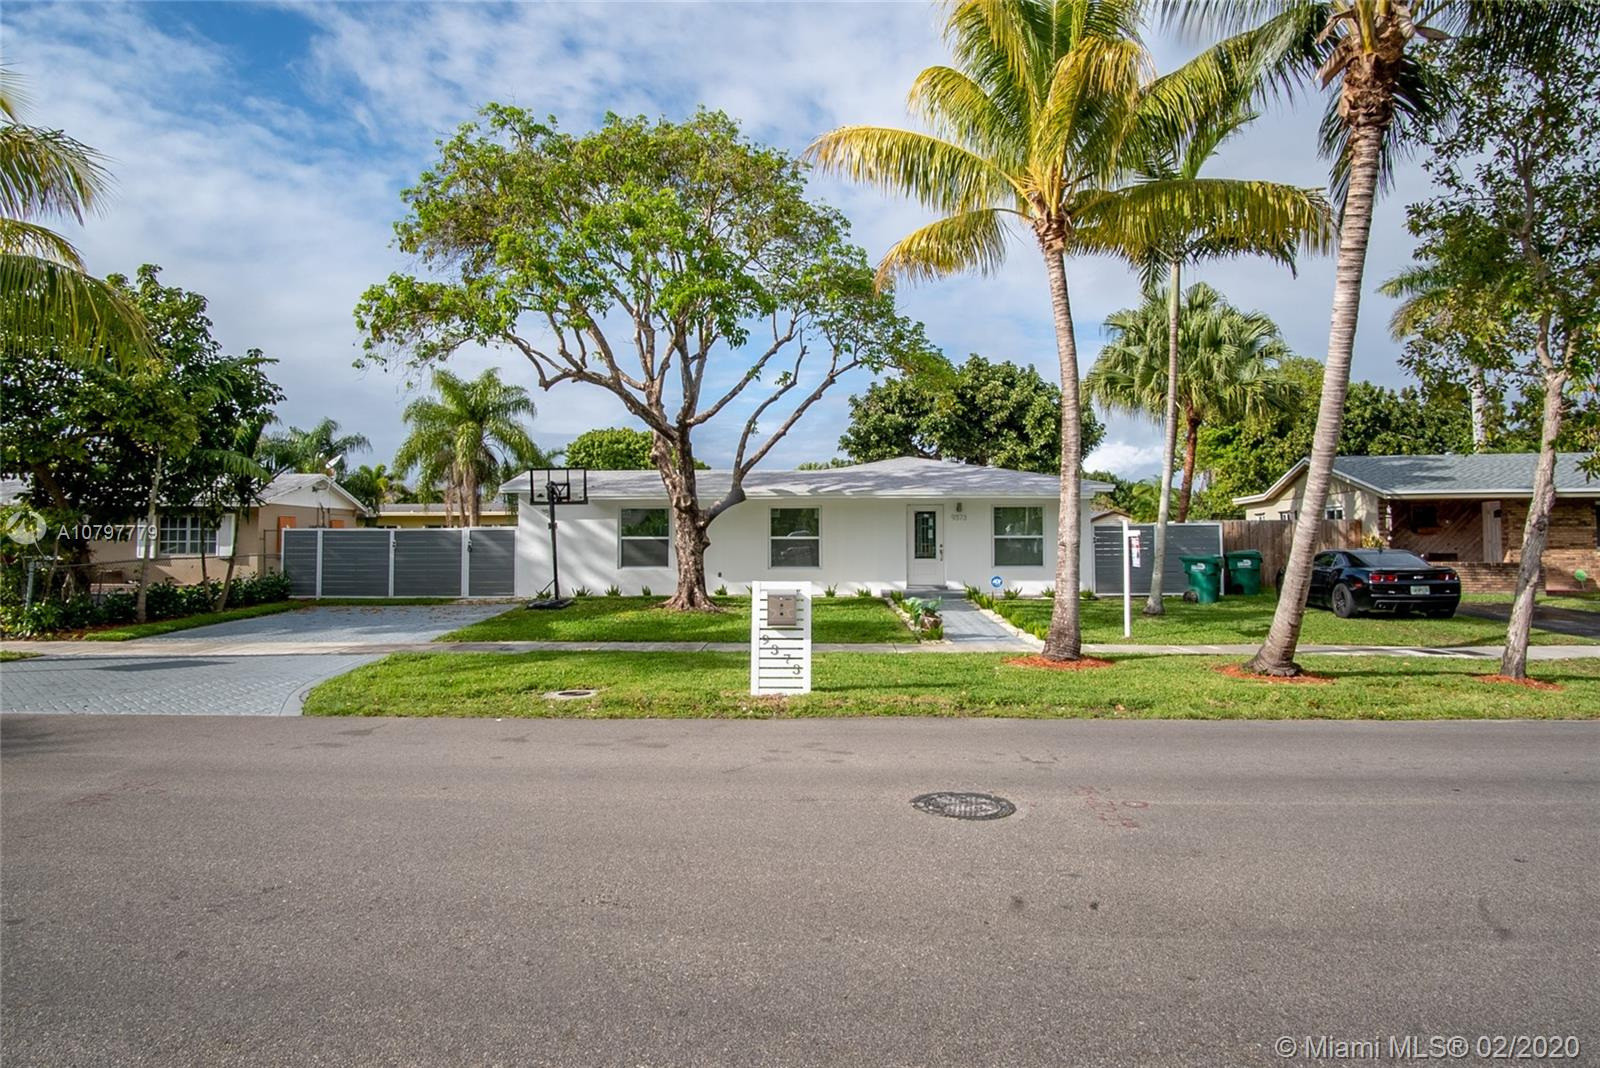 9373 Sterling Dr, Kendall in Miami-dade County County, FL 33157 Home for Sale